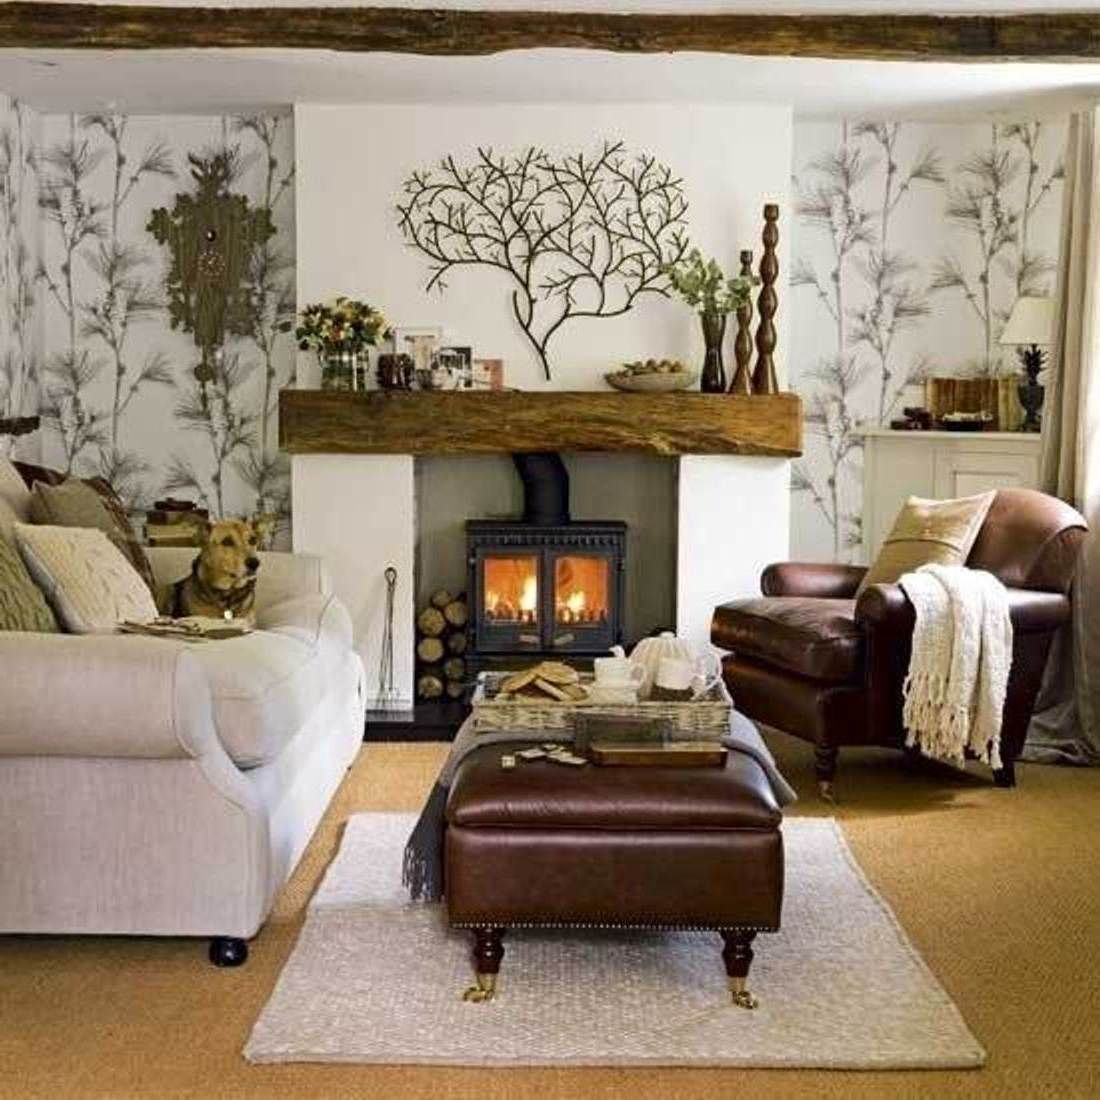 Living Room Country Style Living Room Ideas stylish modern wall decor ideas for living room walls country design ideas